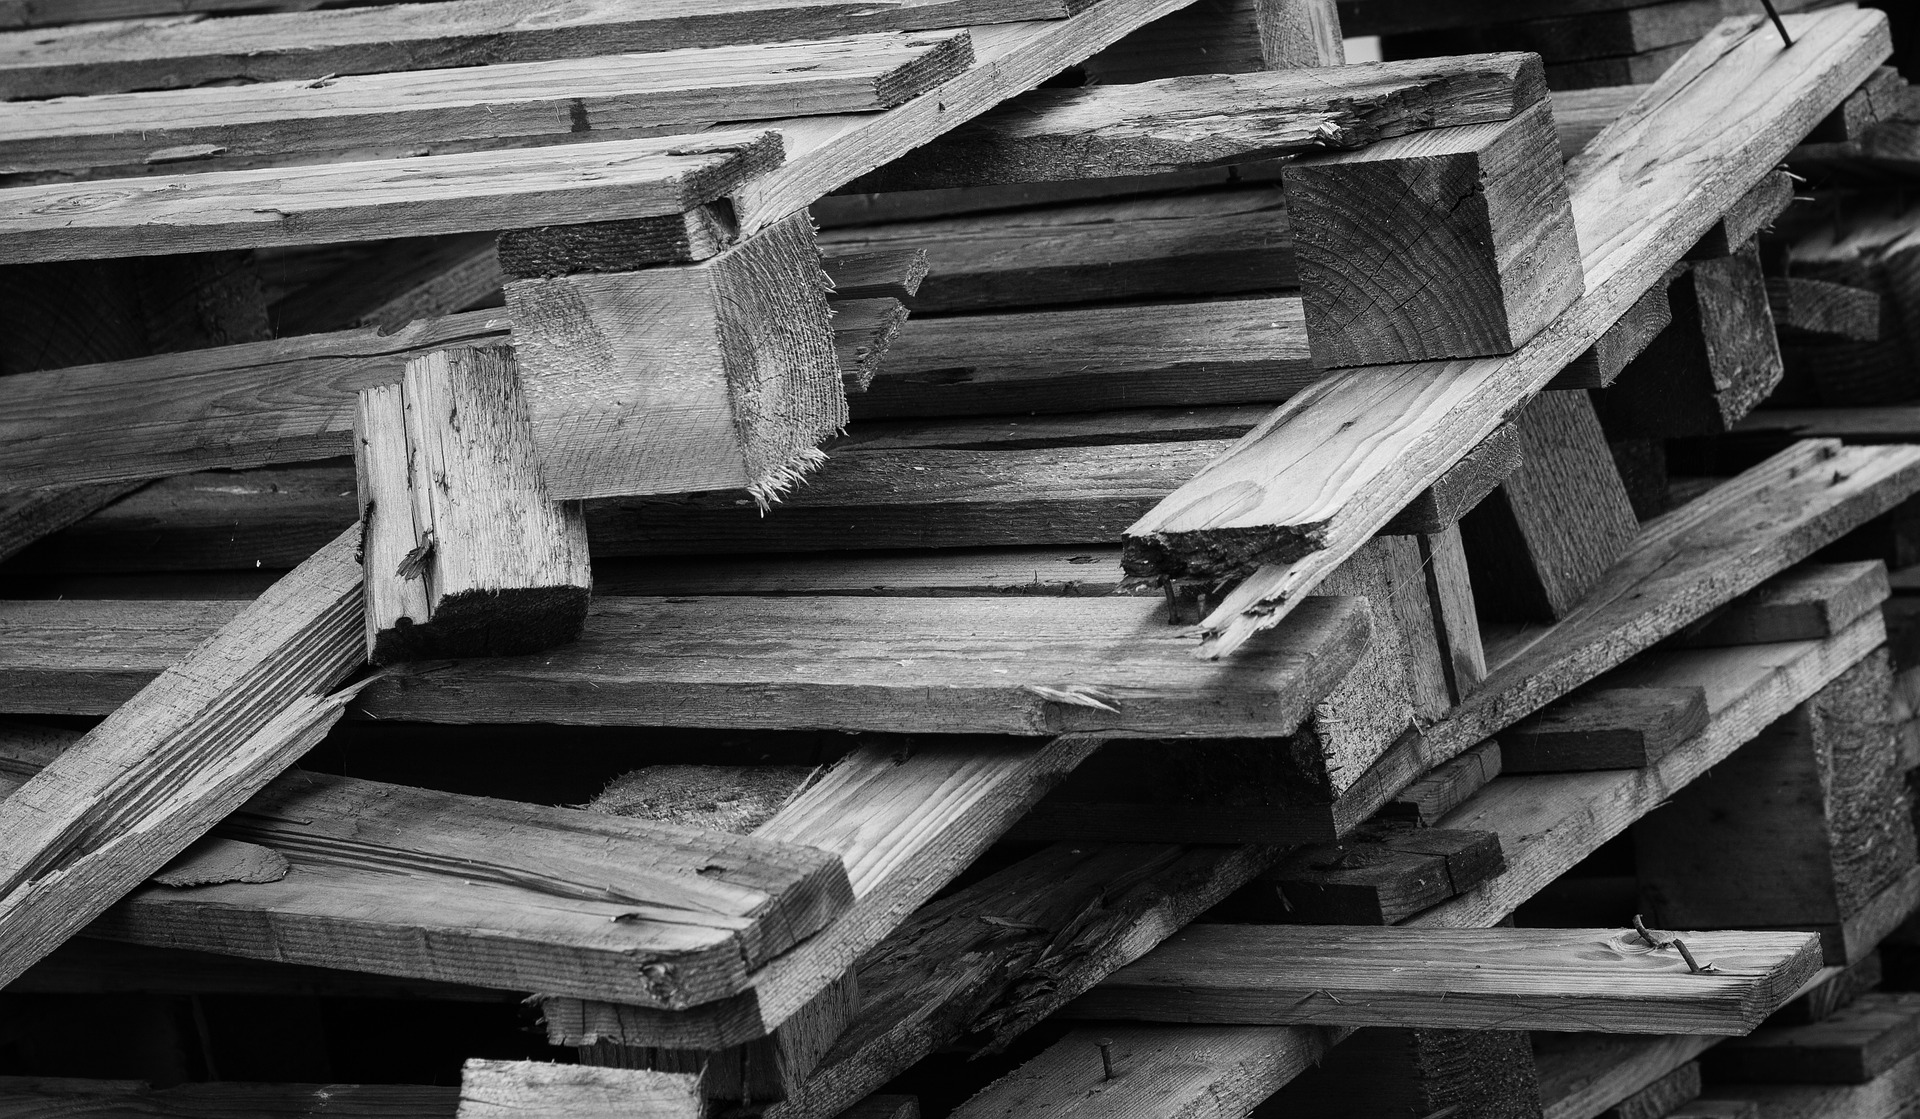 stack of wooden pallets example ofwhat was hit by ar in God incident